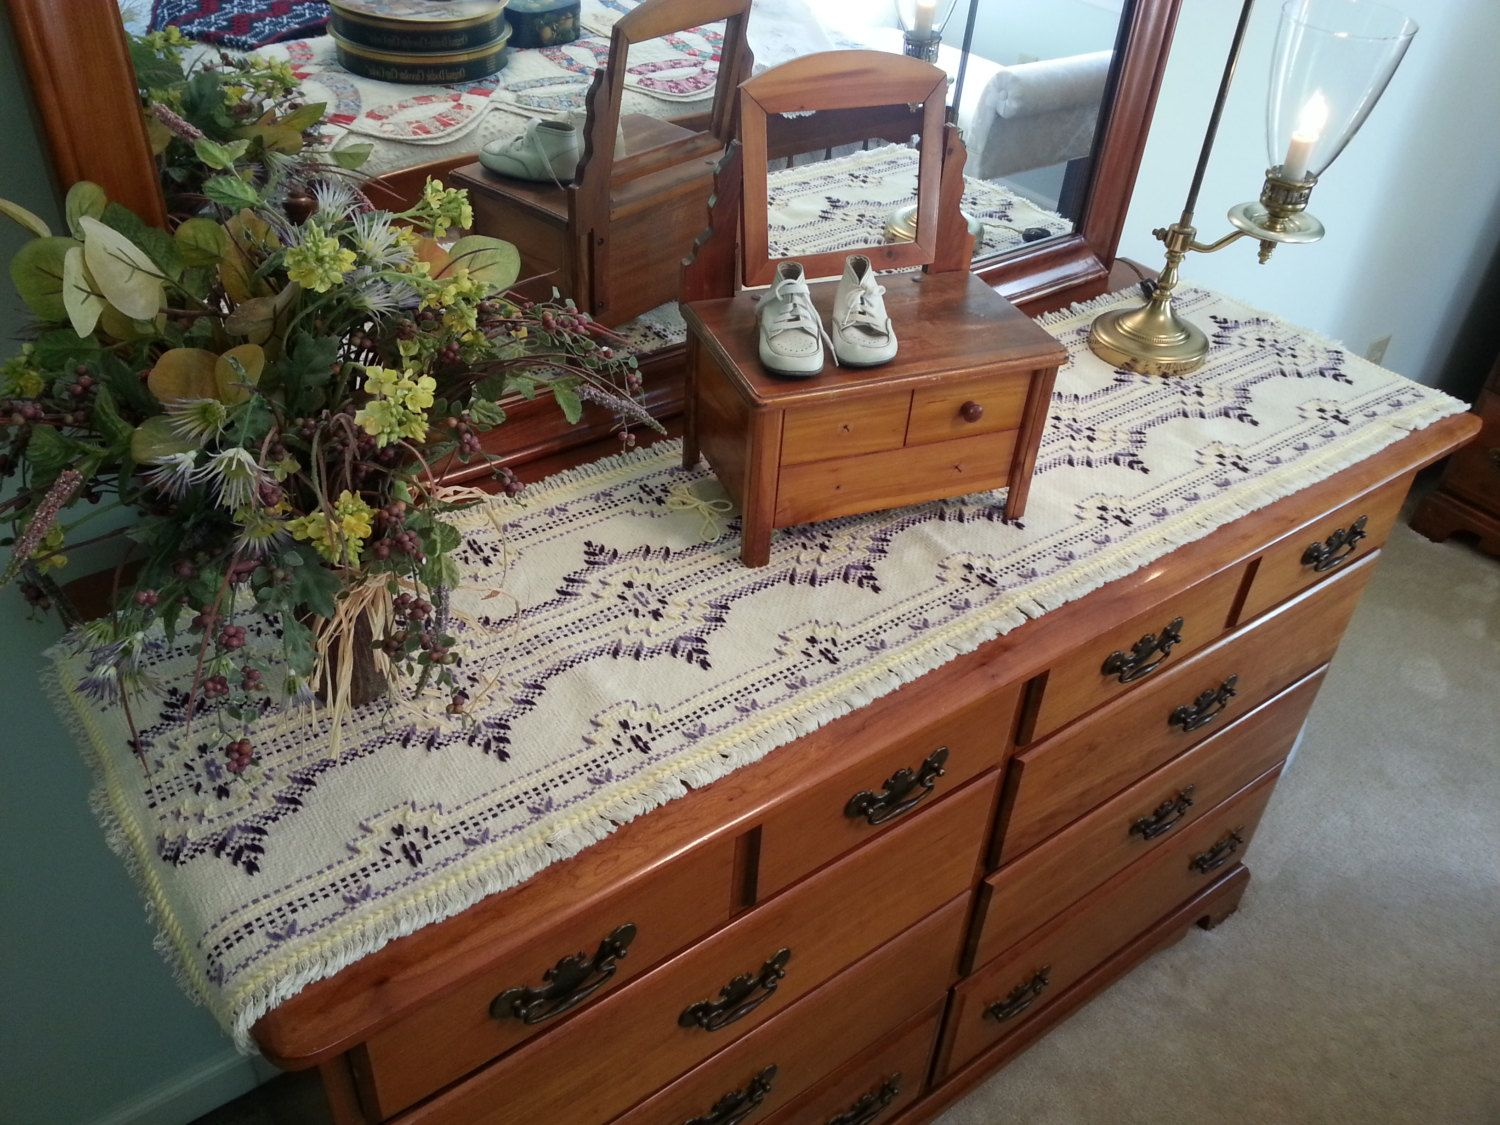 overawe dresser runner and there is a small box and mirror